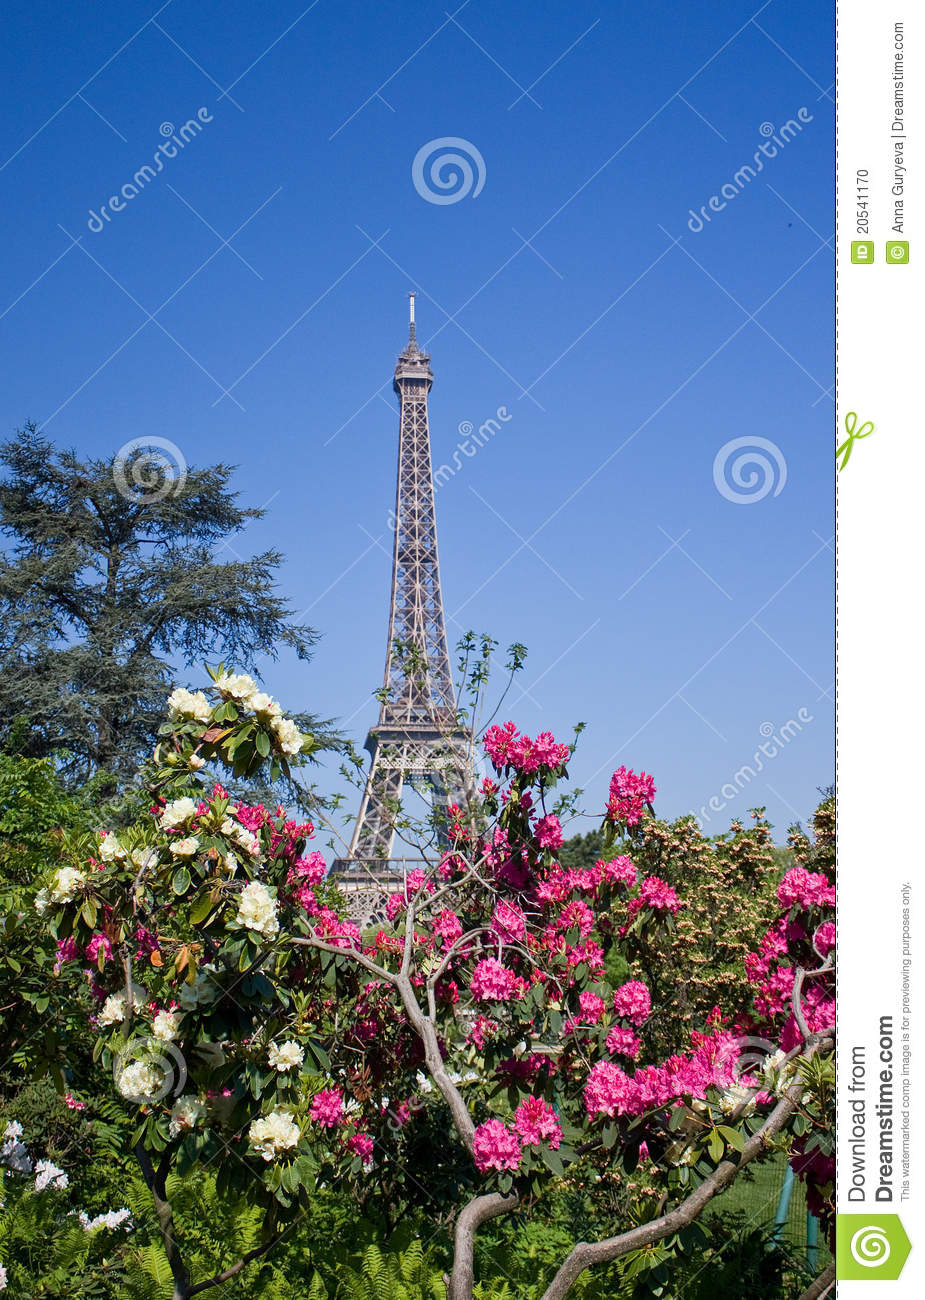 tour eiffel et fleurs photo stock image du avril course 20541170. Black Bedroom Furniture Sets. Home Design Ideas